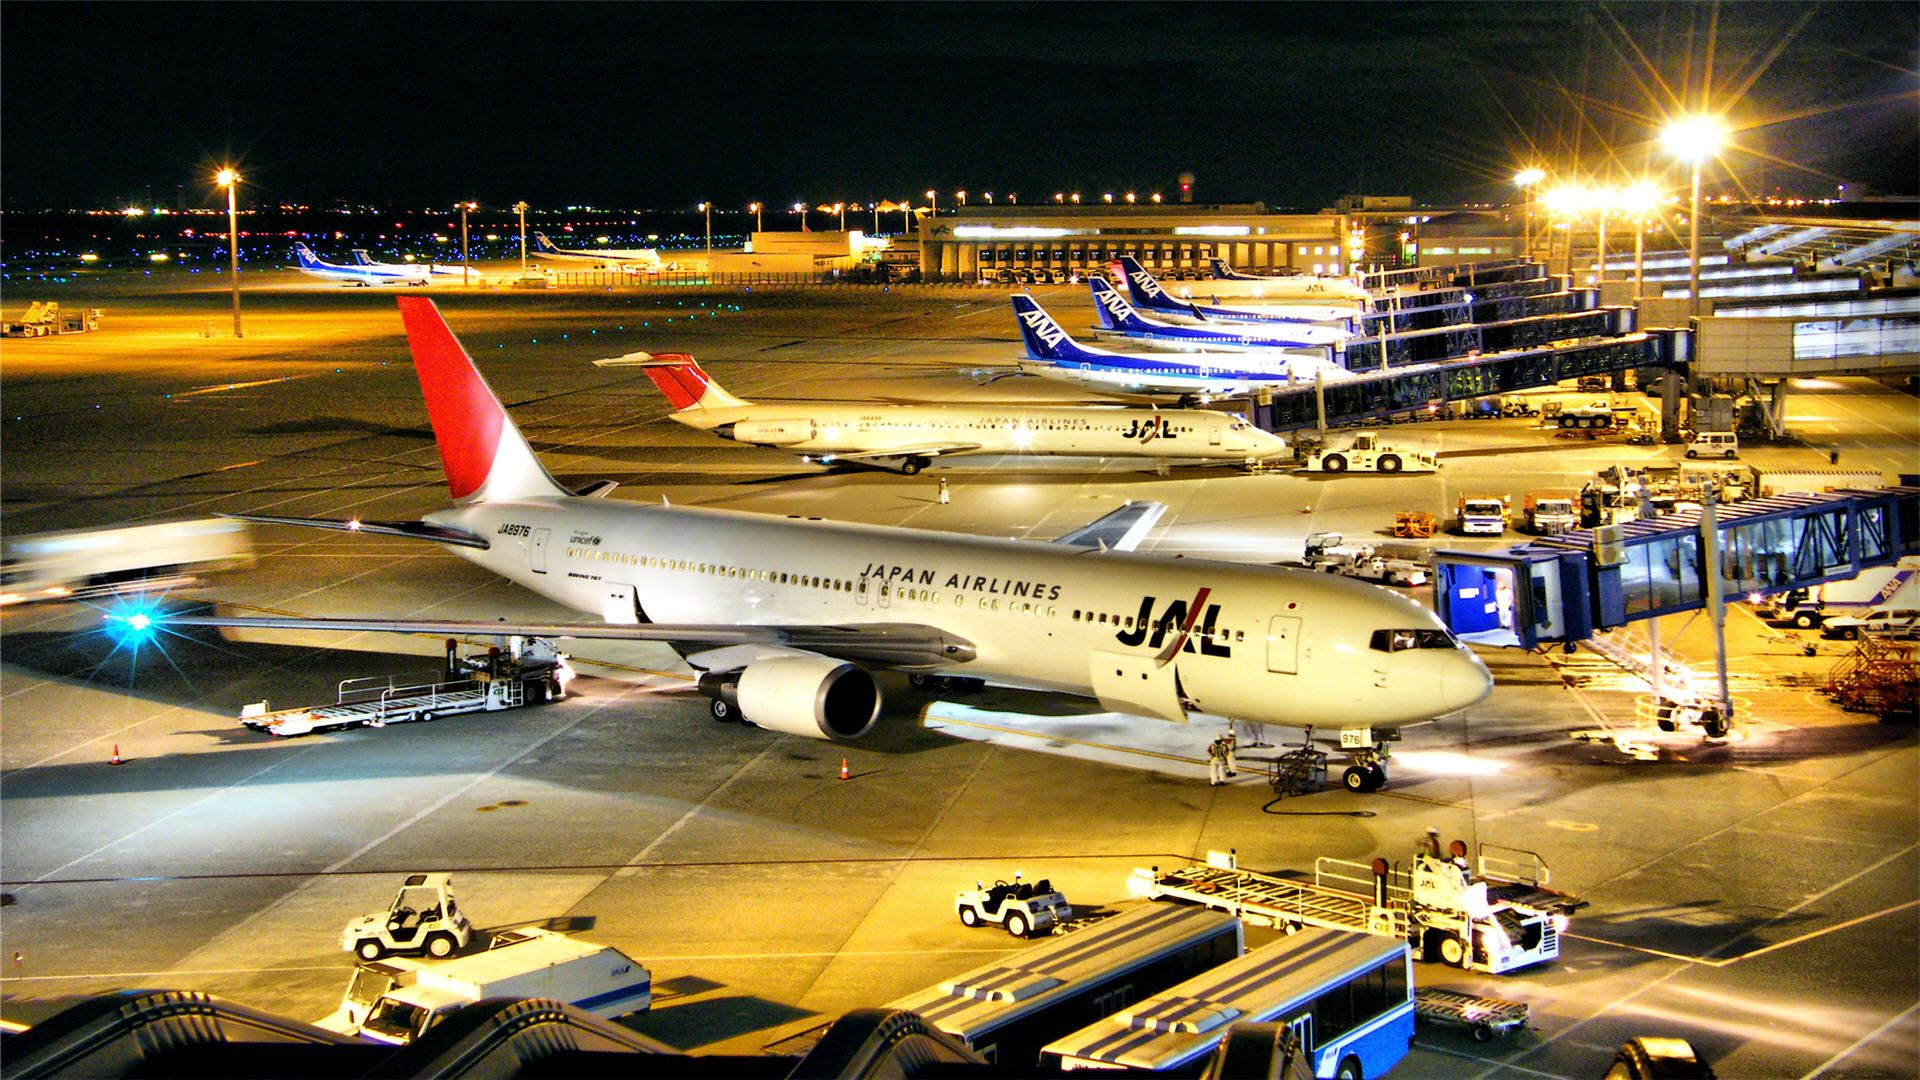 Heathrow Airport Picture Wallpaper HD 1920x1080 3244